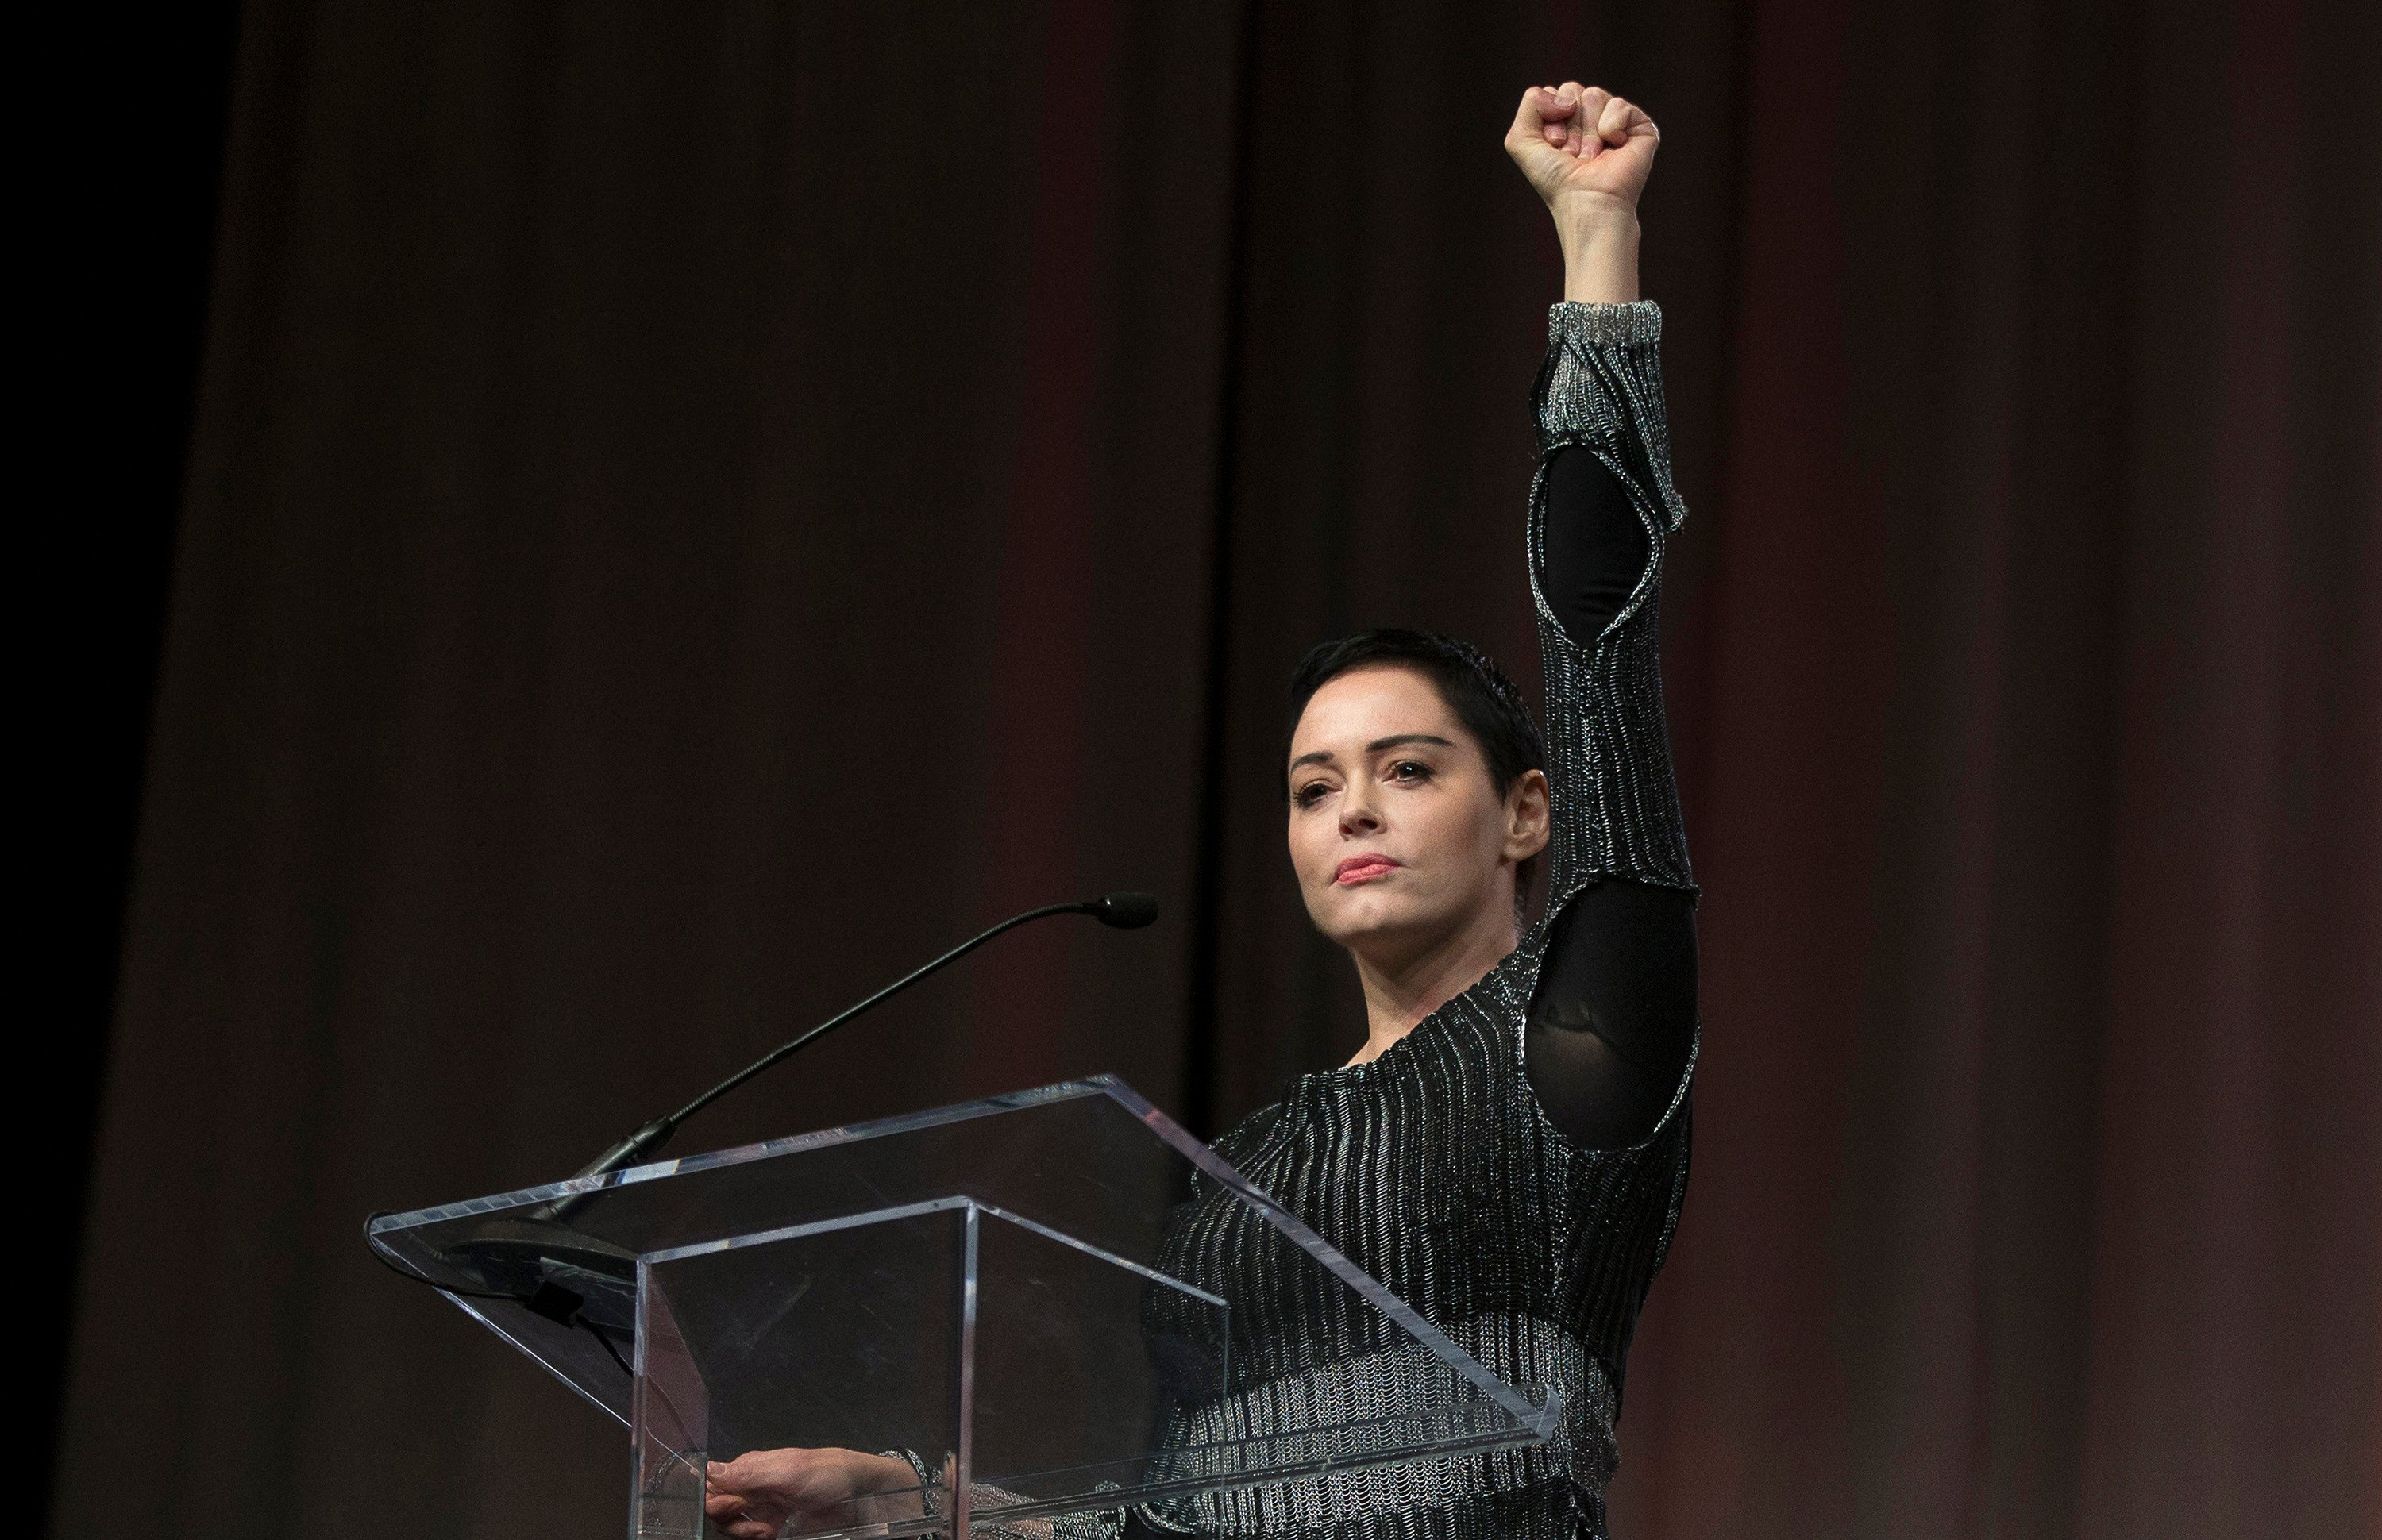 4 ways the #MeToo movement has changed Hollywood